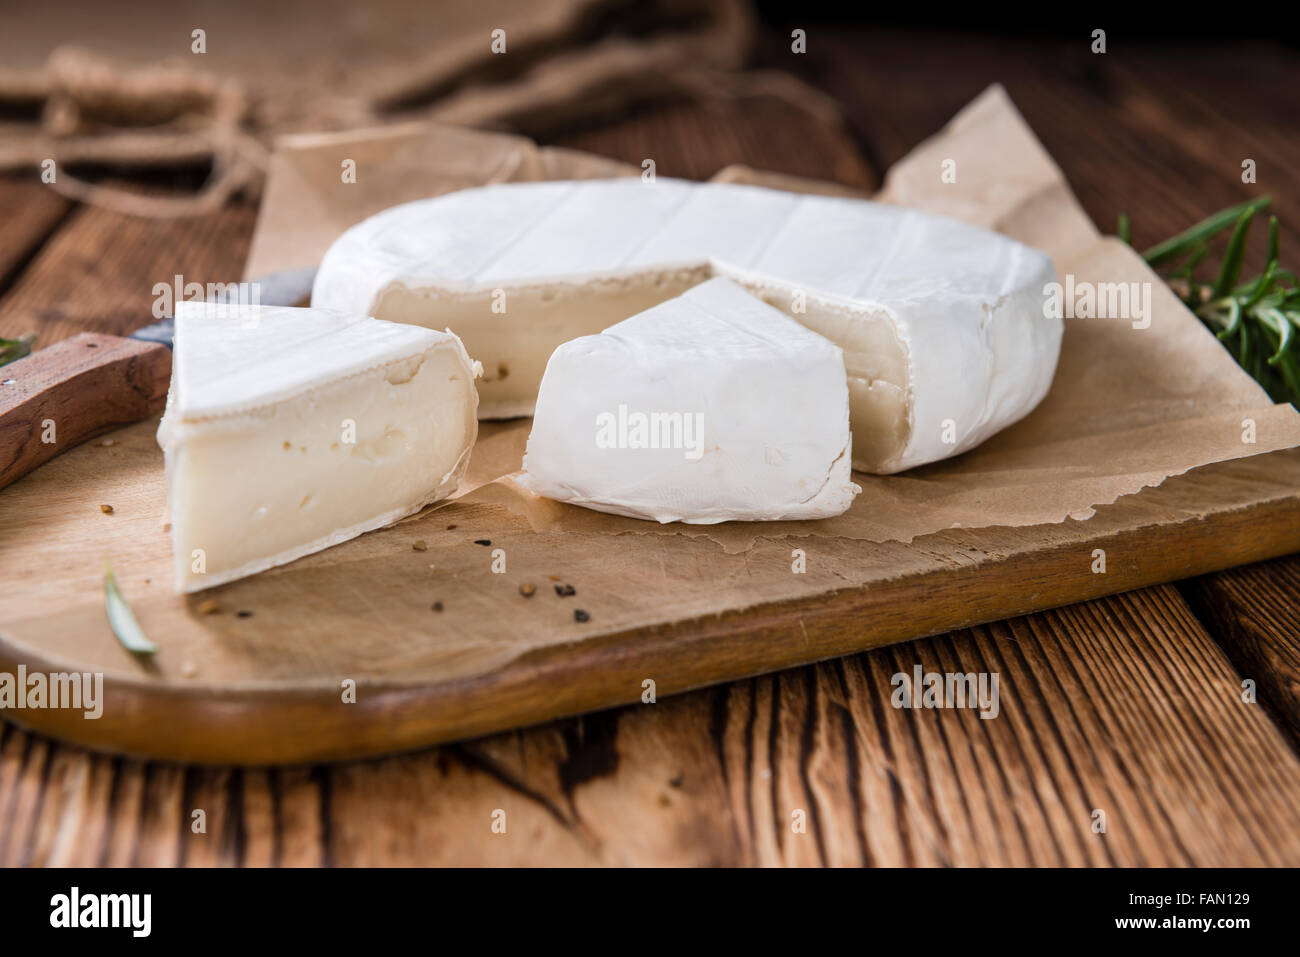 Pieces of creamy Camembert (close-up shot) on vintage wooden background Stock Photo